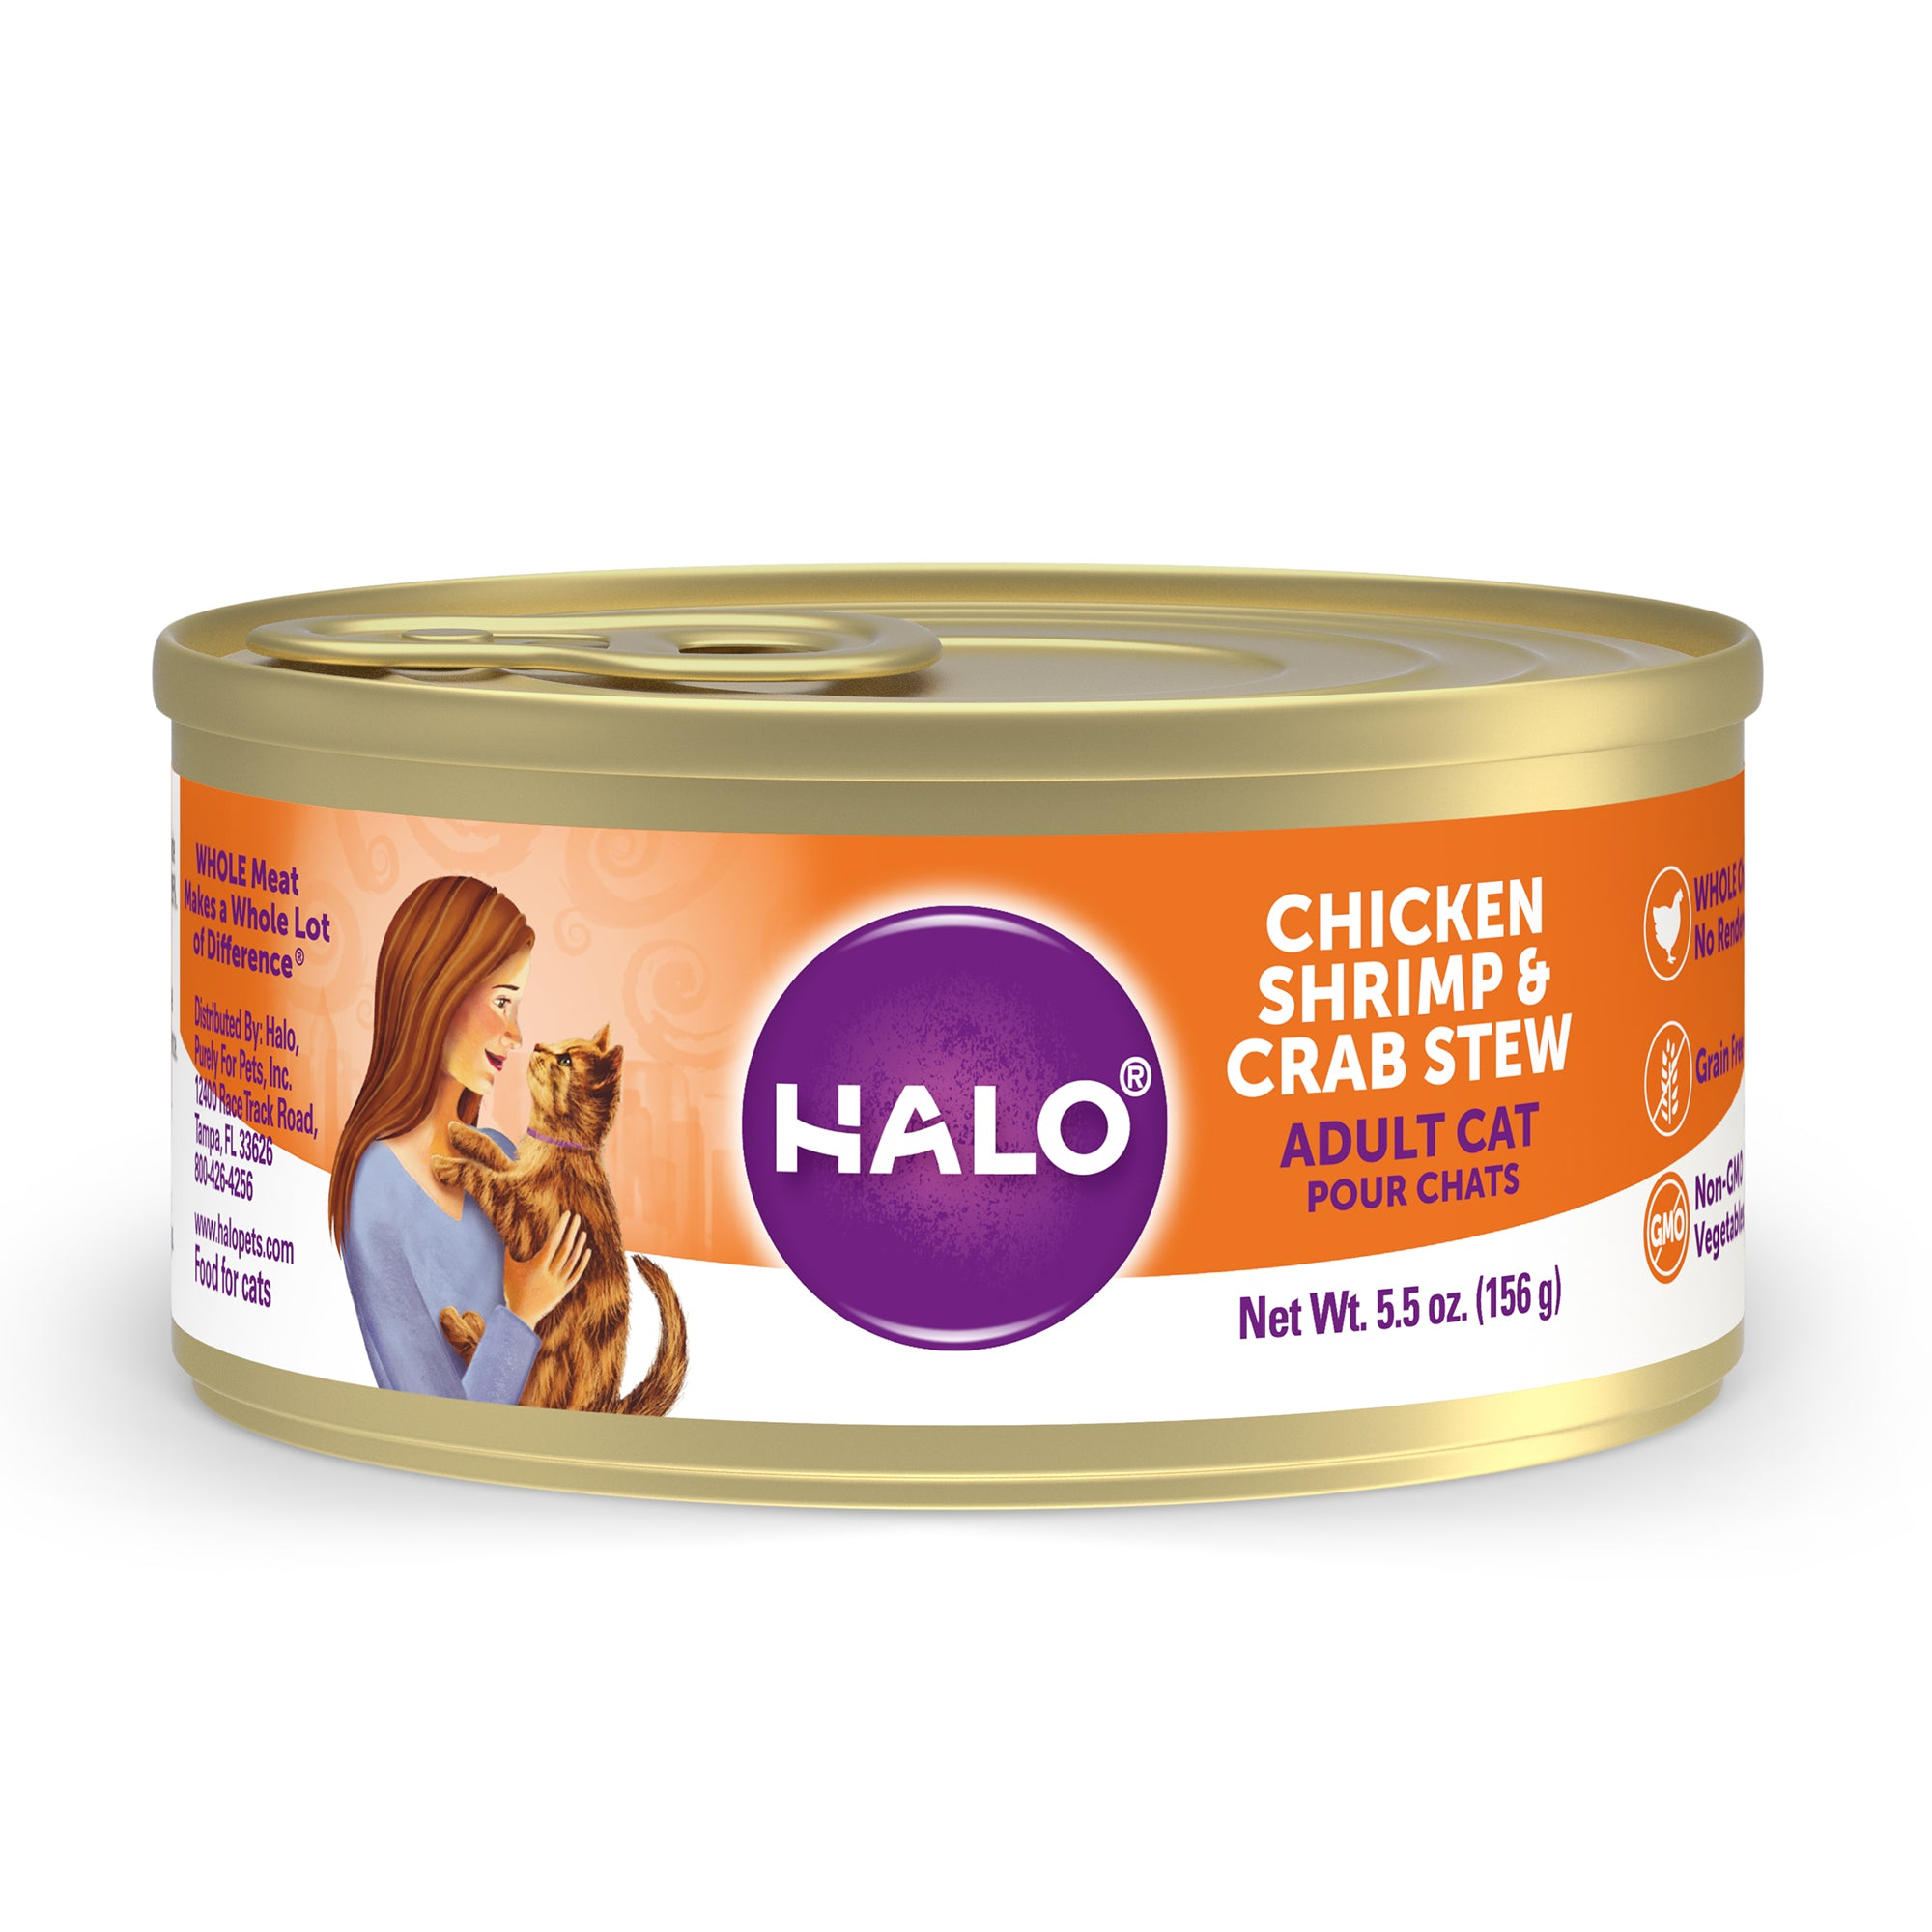 Halo Adult Cat - Grain Free Chicken Shrimp & Crab Stew